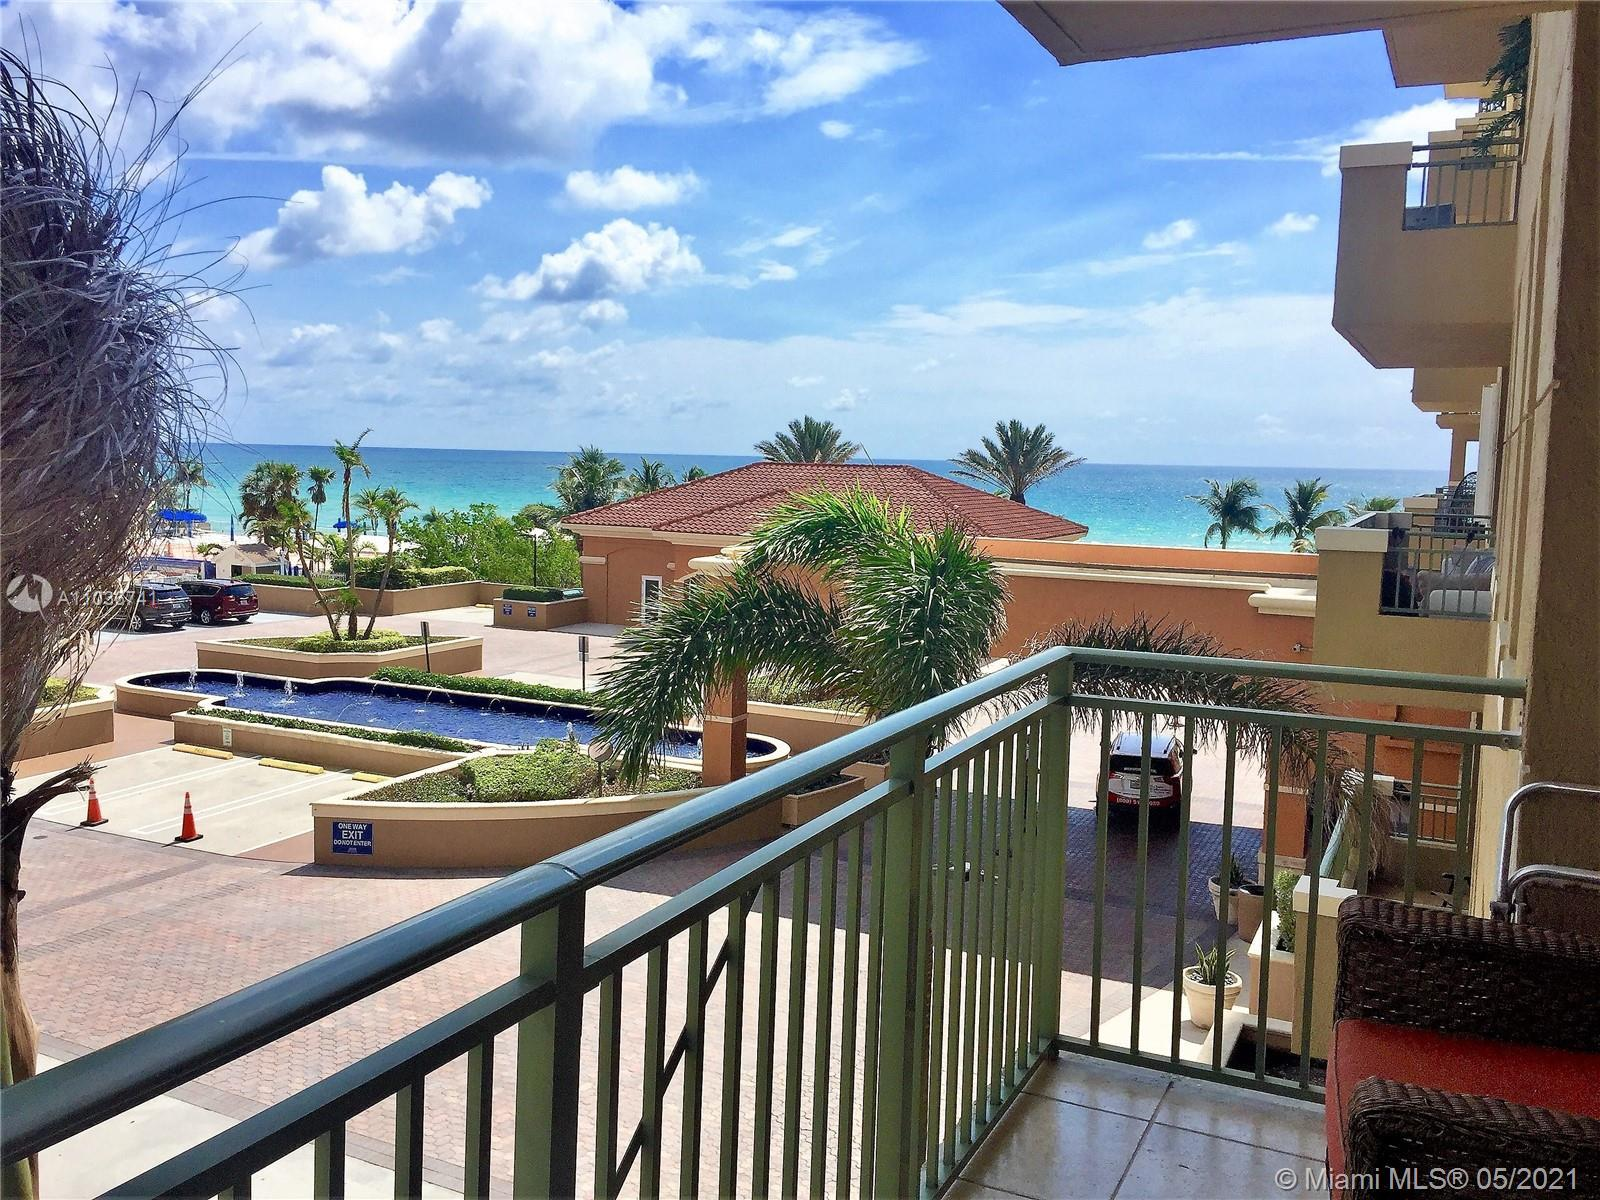 Luxurious & upgraded condo on the beach at 2080 Ocean Drive! Sold furnished with upscale furniture f